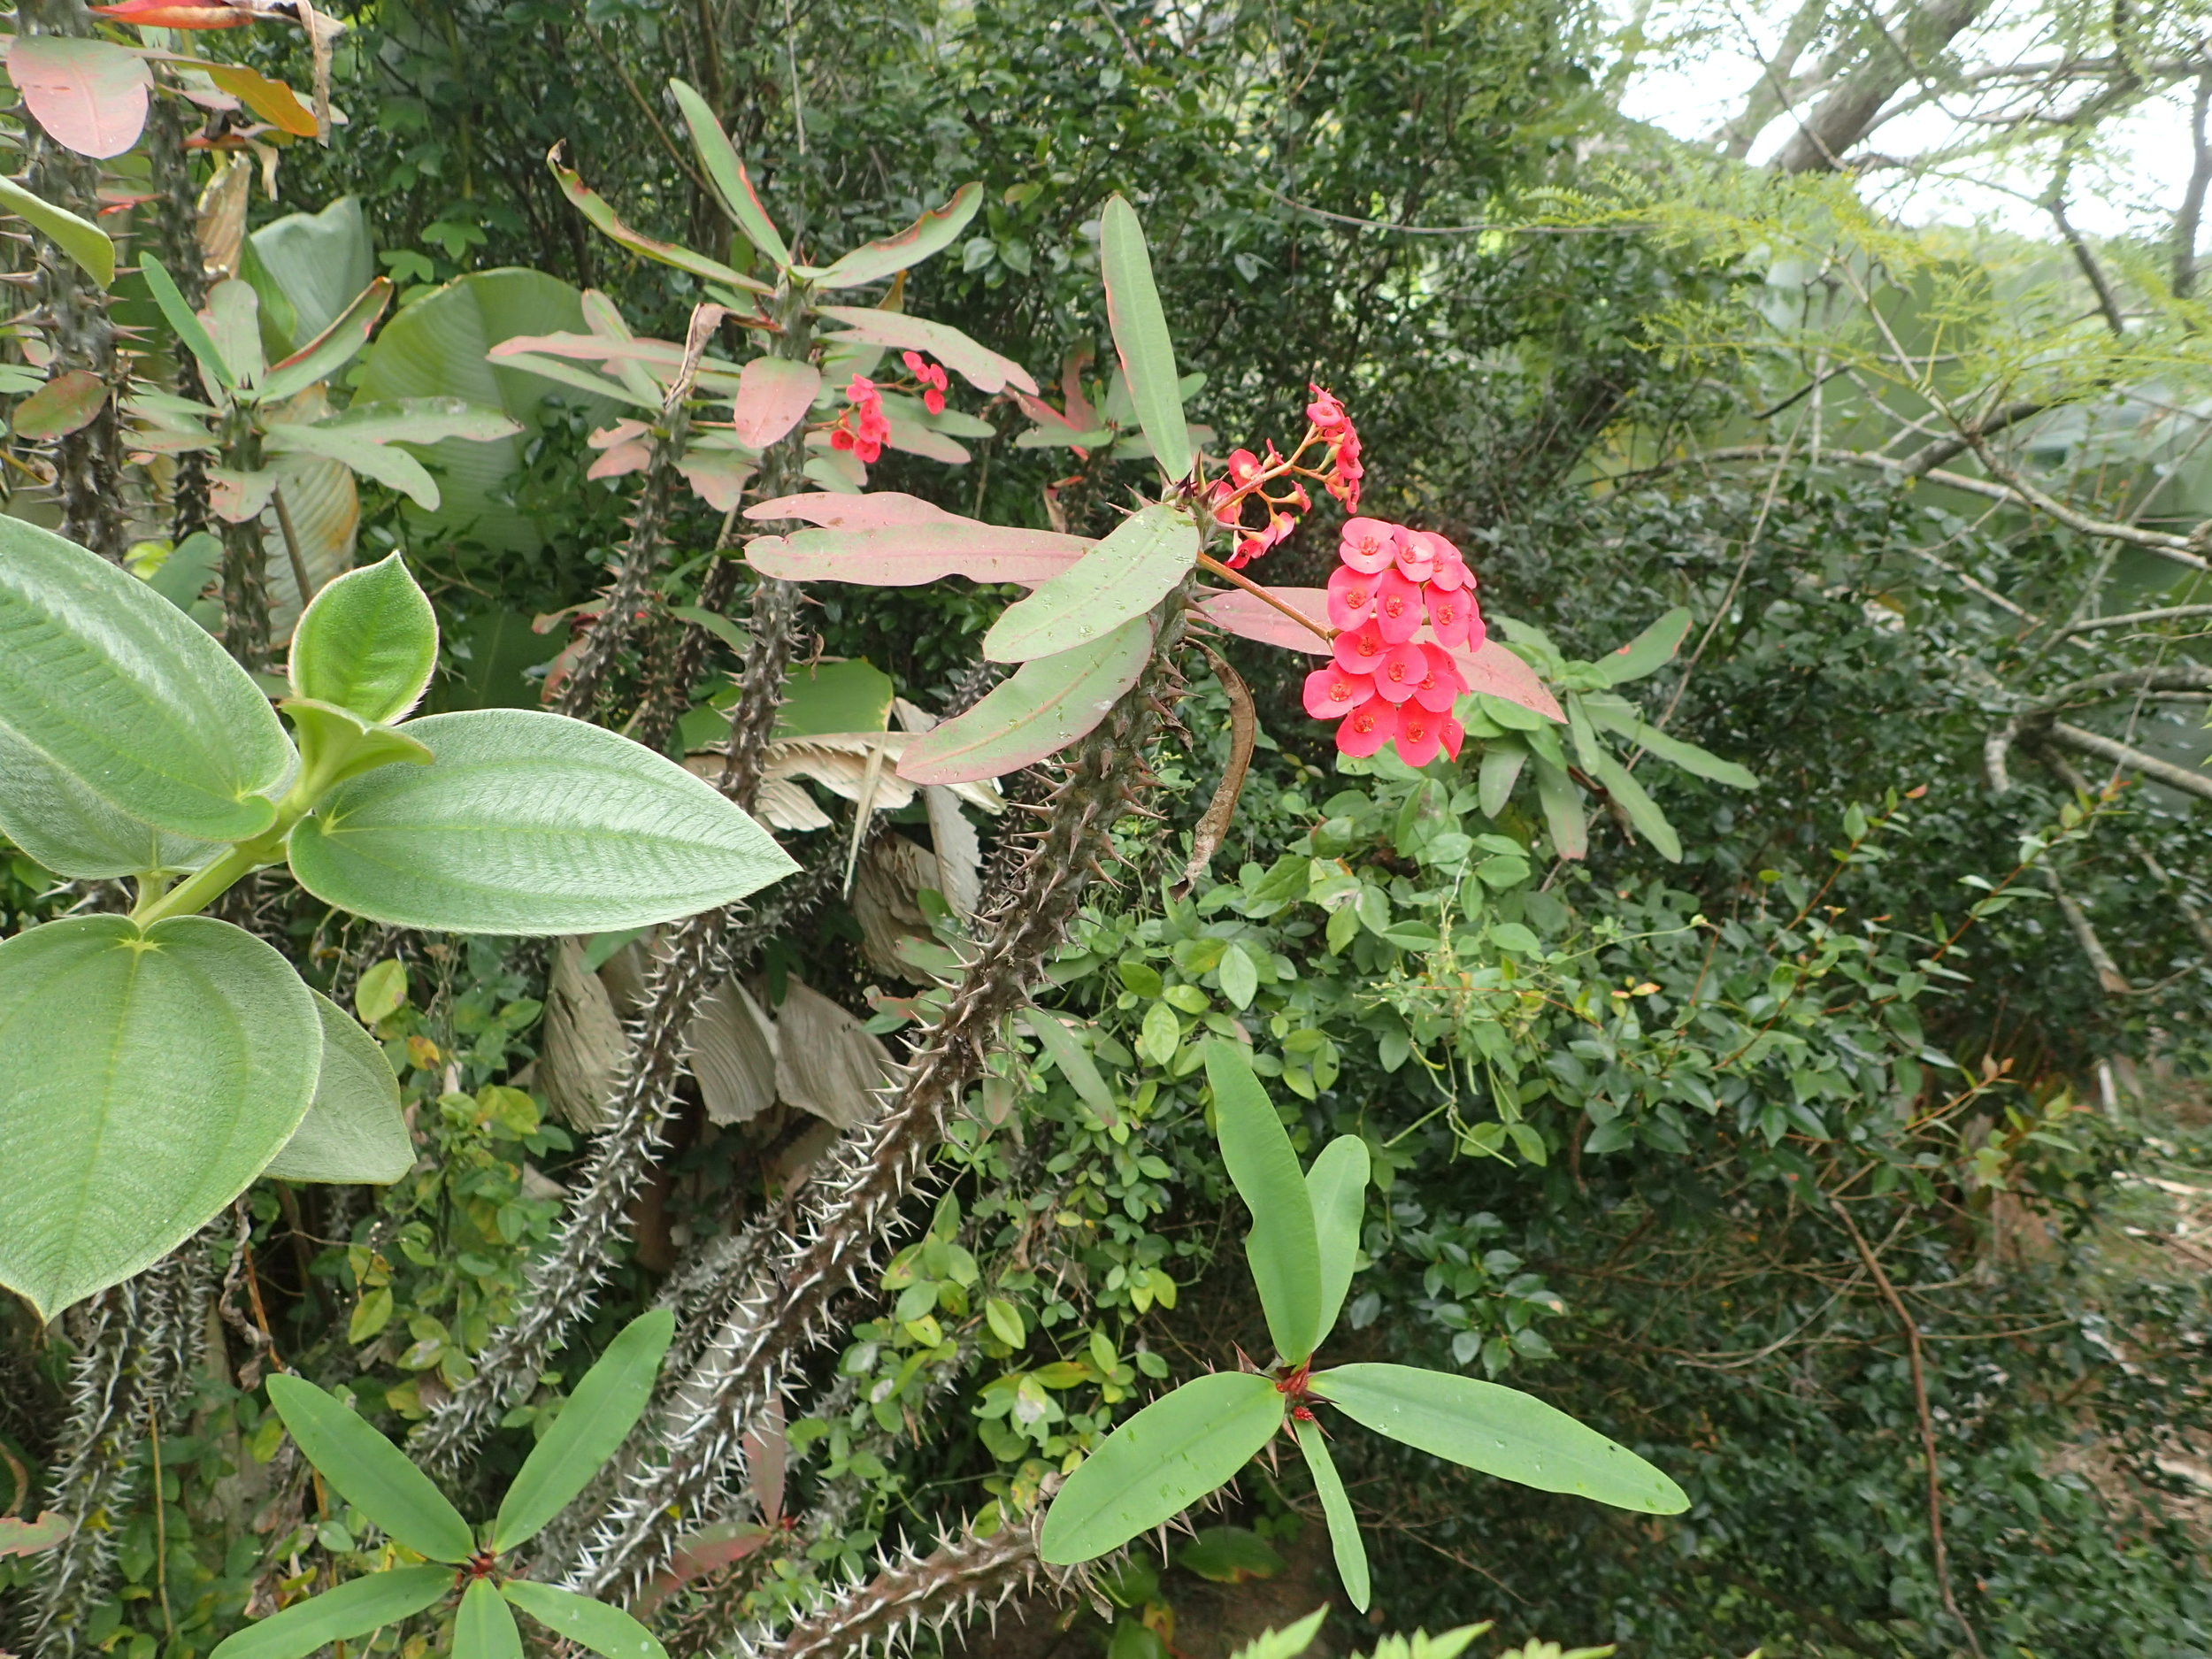 Known commonly as the Crown of Thorns, the species pictured here is the  Euphorbia gottlebei.  It looks very similar to the  E. milli , except that in can grow up to 5 feet in height. Picture taken by the author,Marozevo, Madagascar.